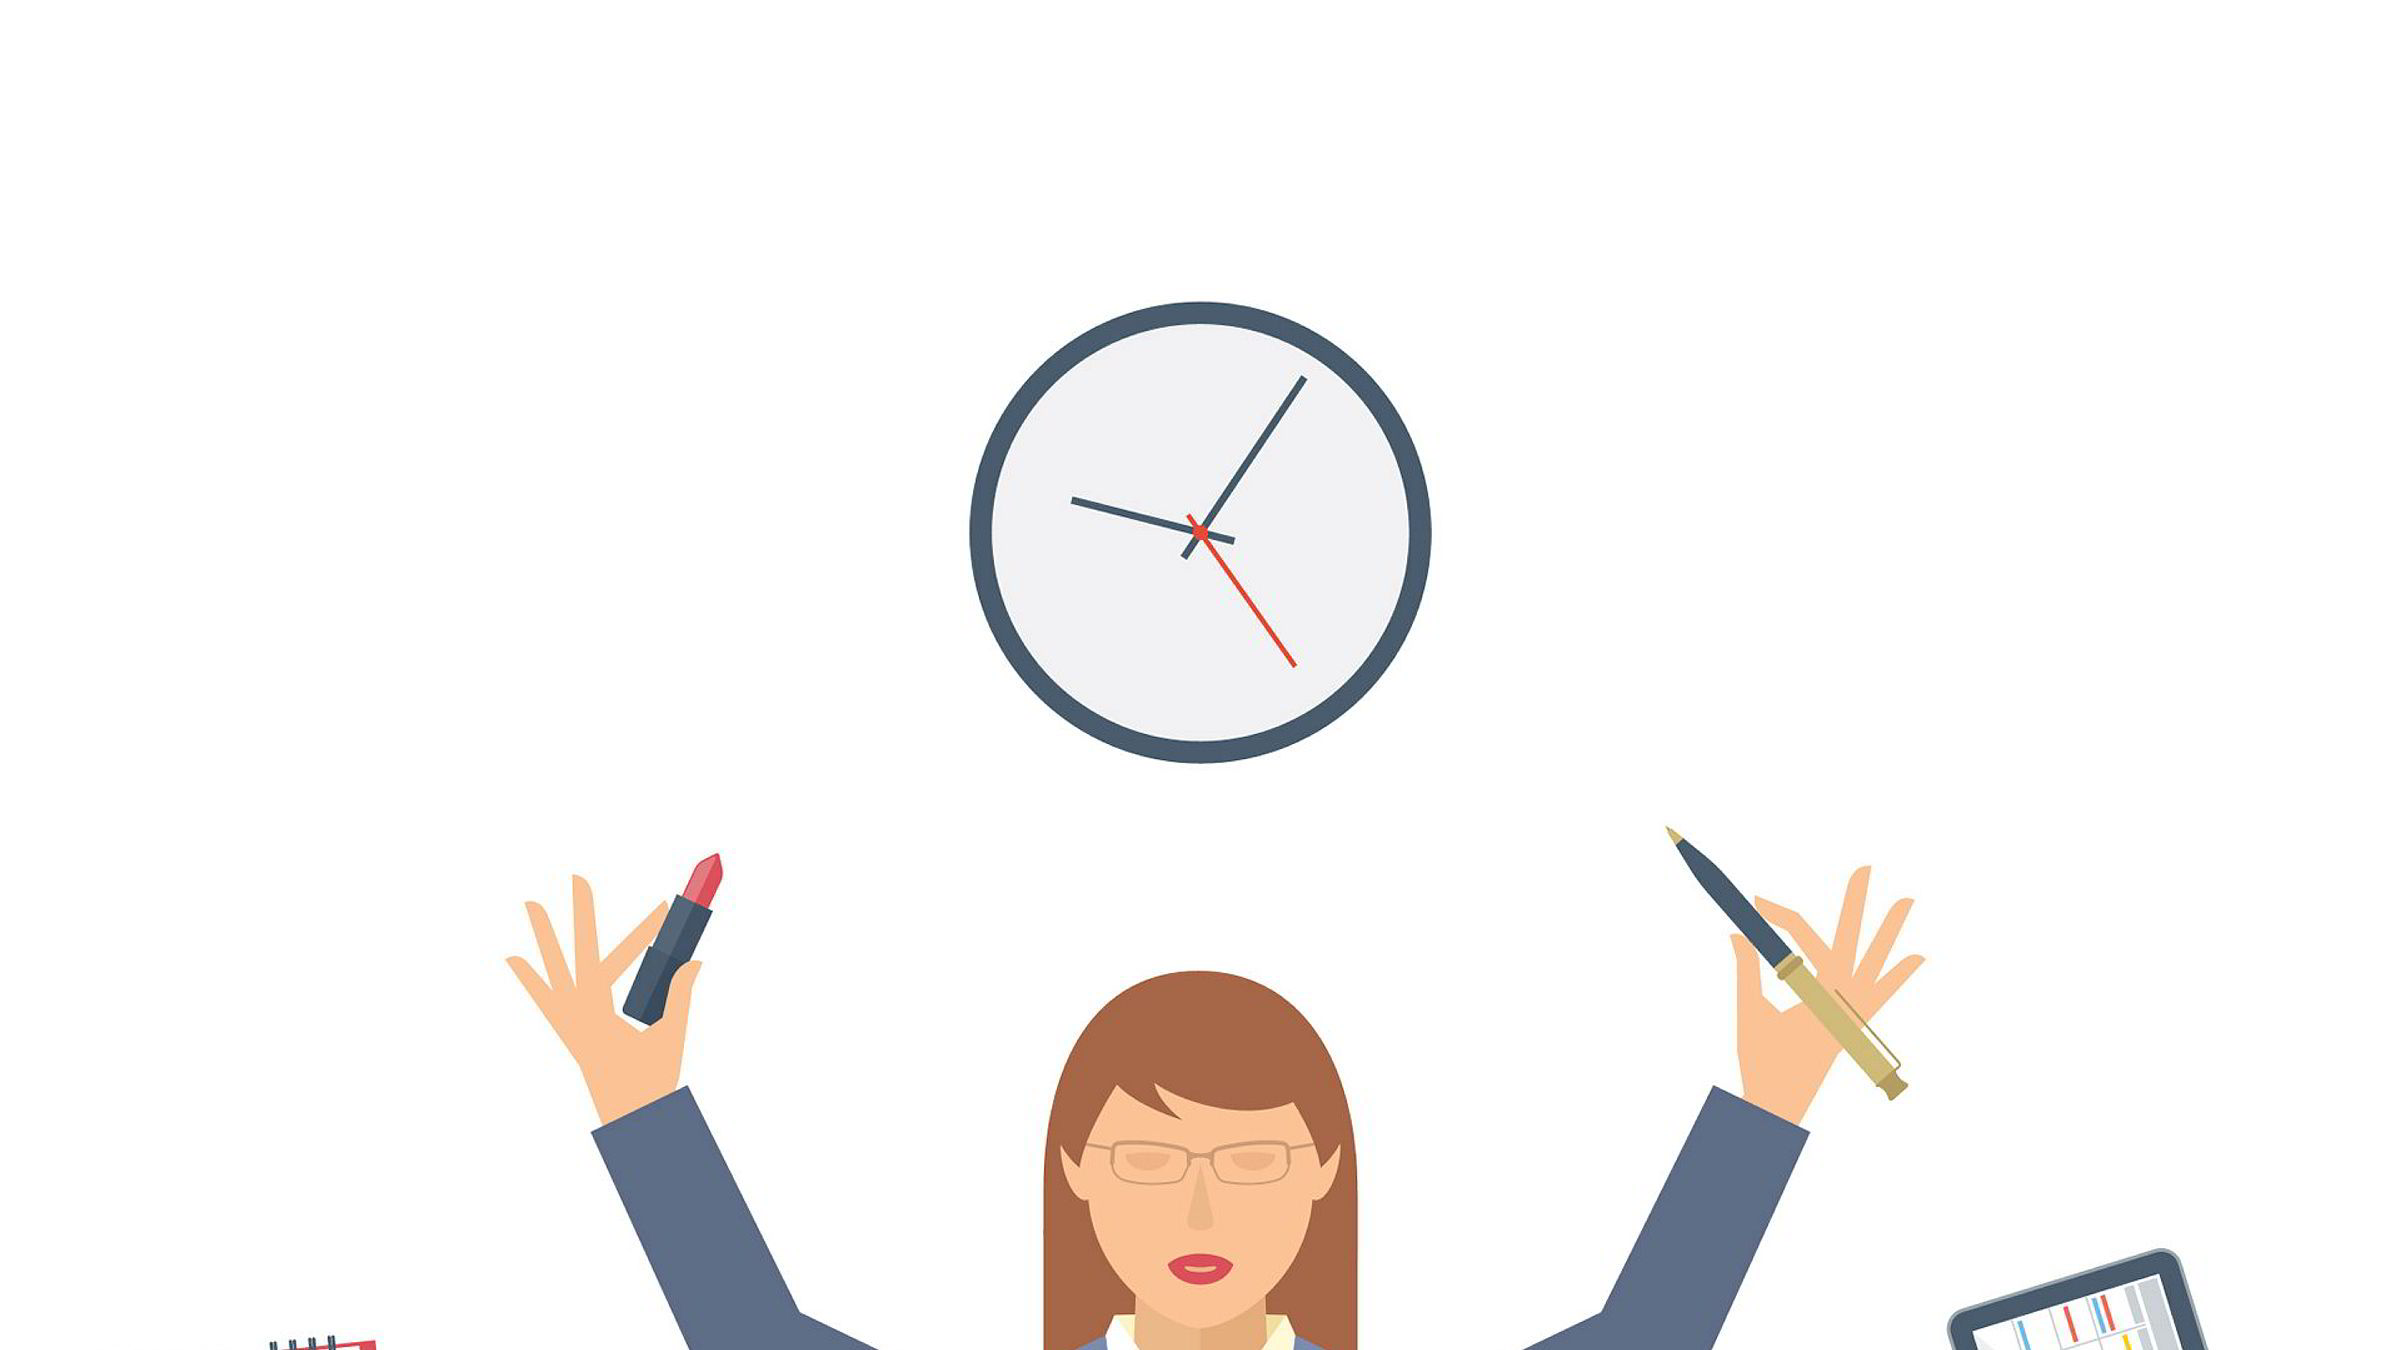 Business multitasking time management. Flat vector concept isolated illustration. Businesswoman at work meditates with calendar, schedule, timetable in the hands. Busy woman's office meditation.